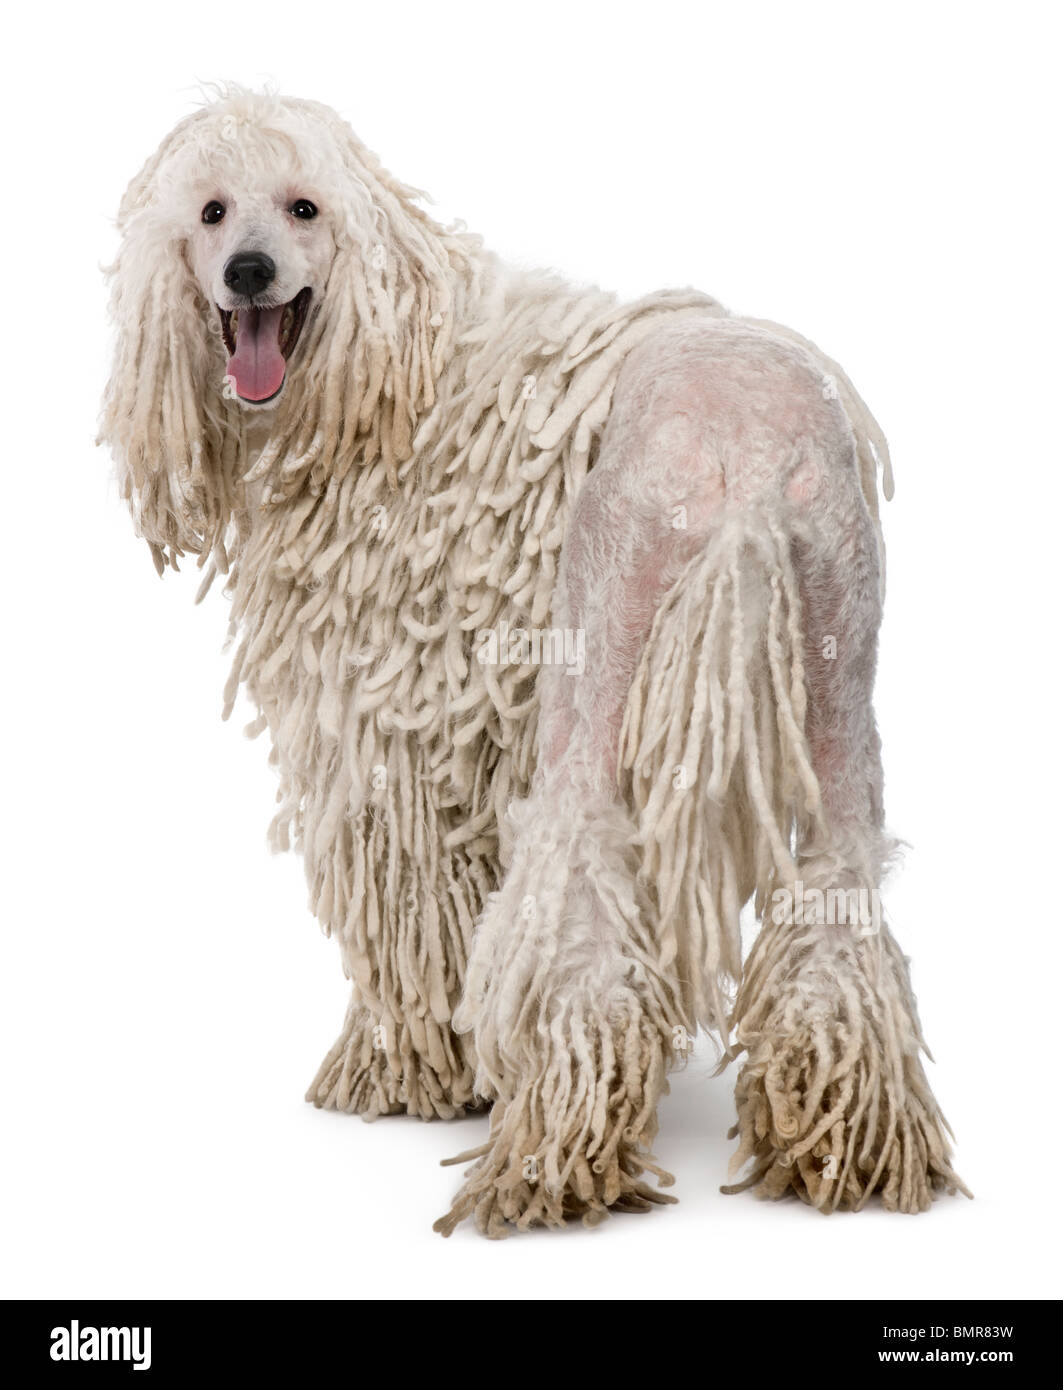 White Corded standard Poodle against white background - Stock Image